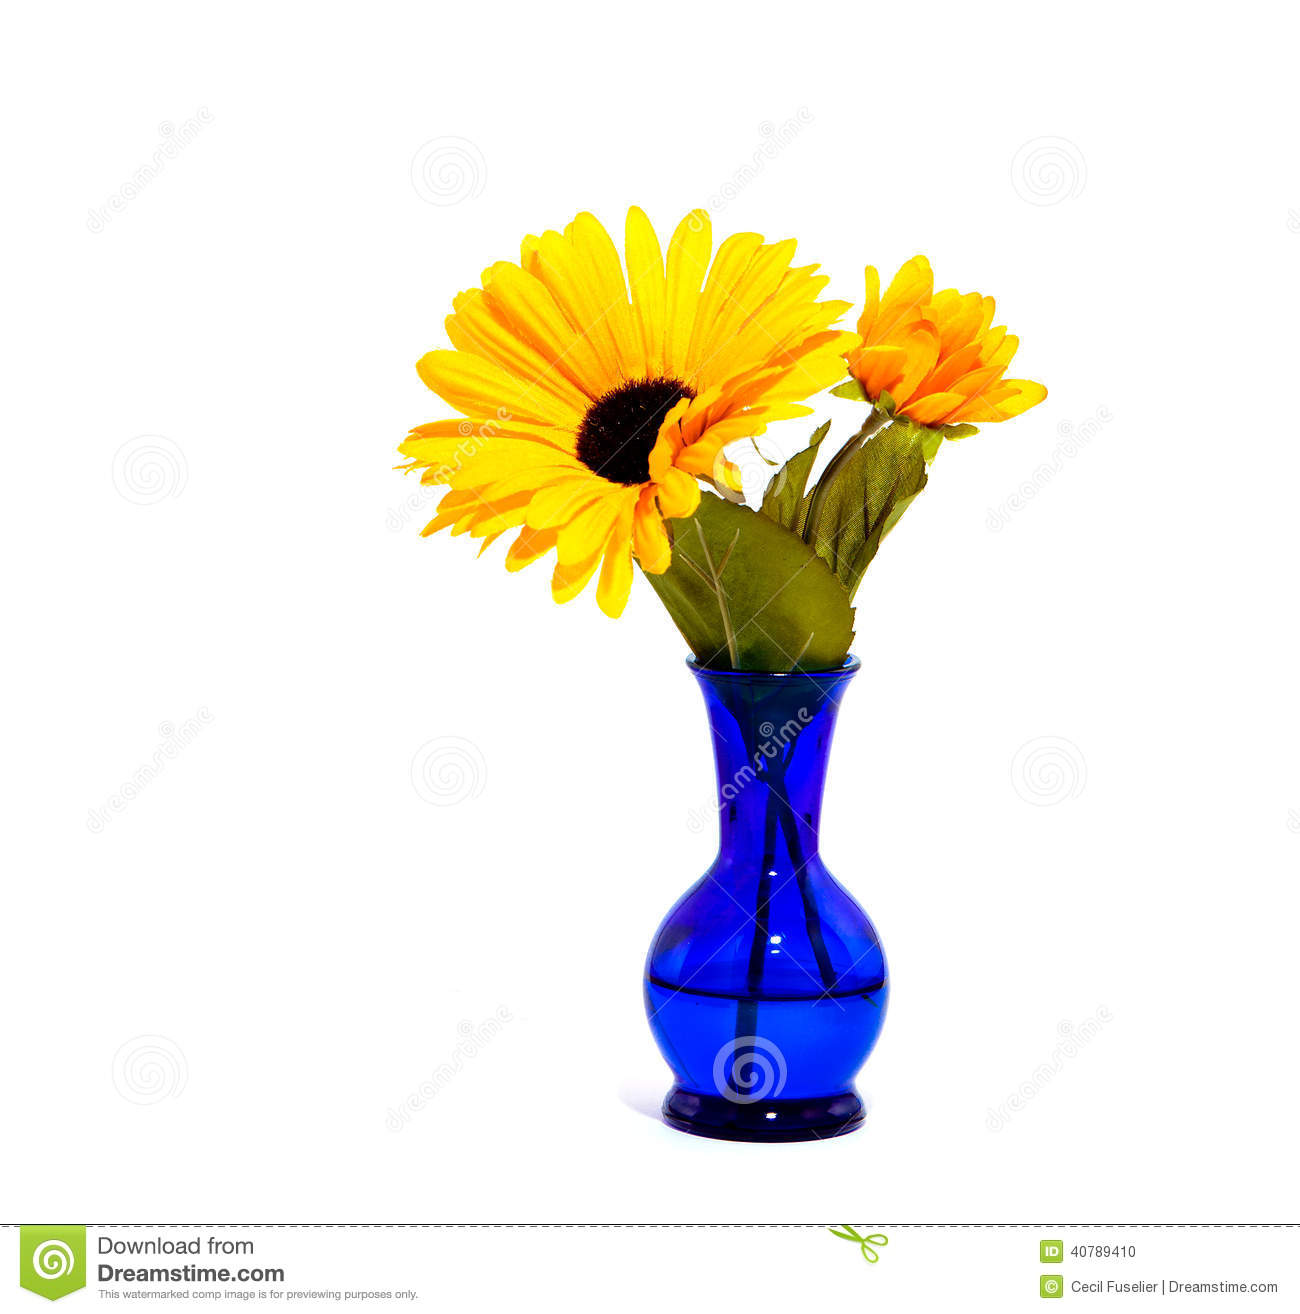 Flowers Cobalt Blue And Yellow Stock Photo Image Of Still Blue